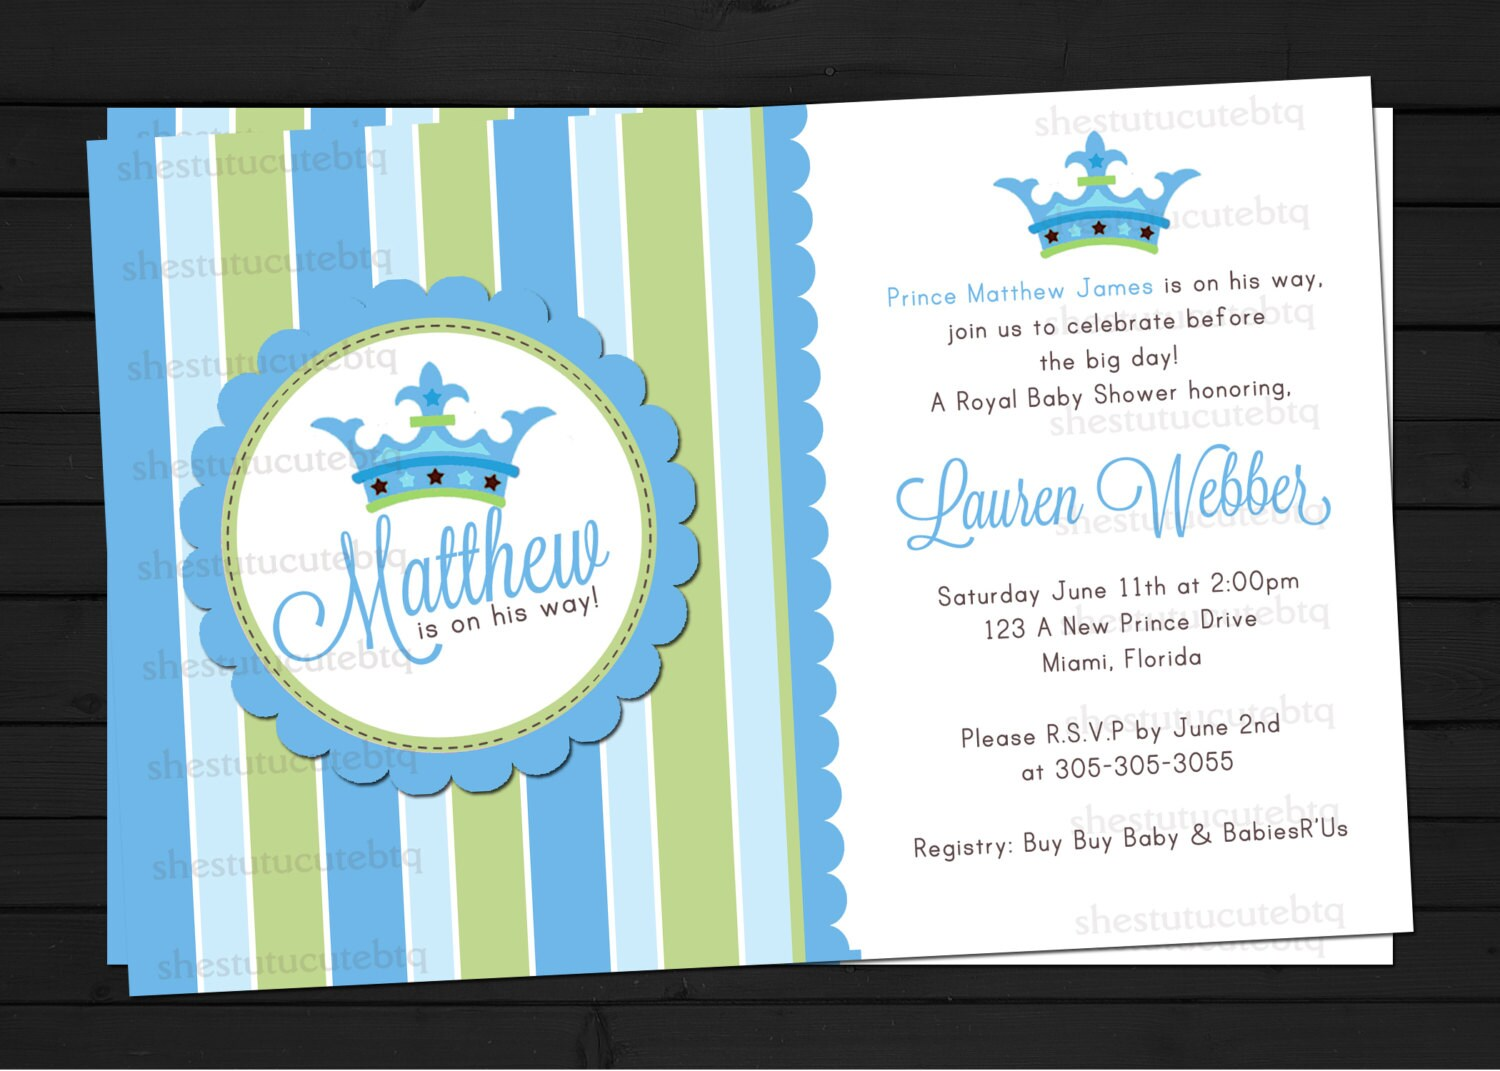 little prince baby shower invitation digital by shestutucutebtq